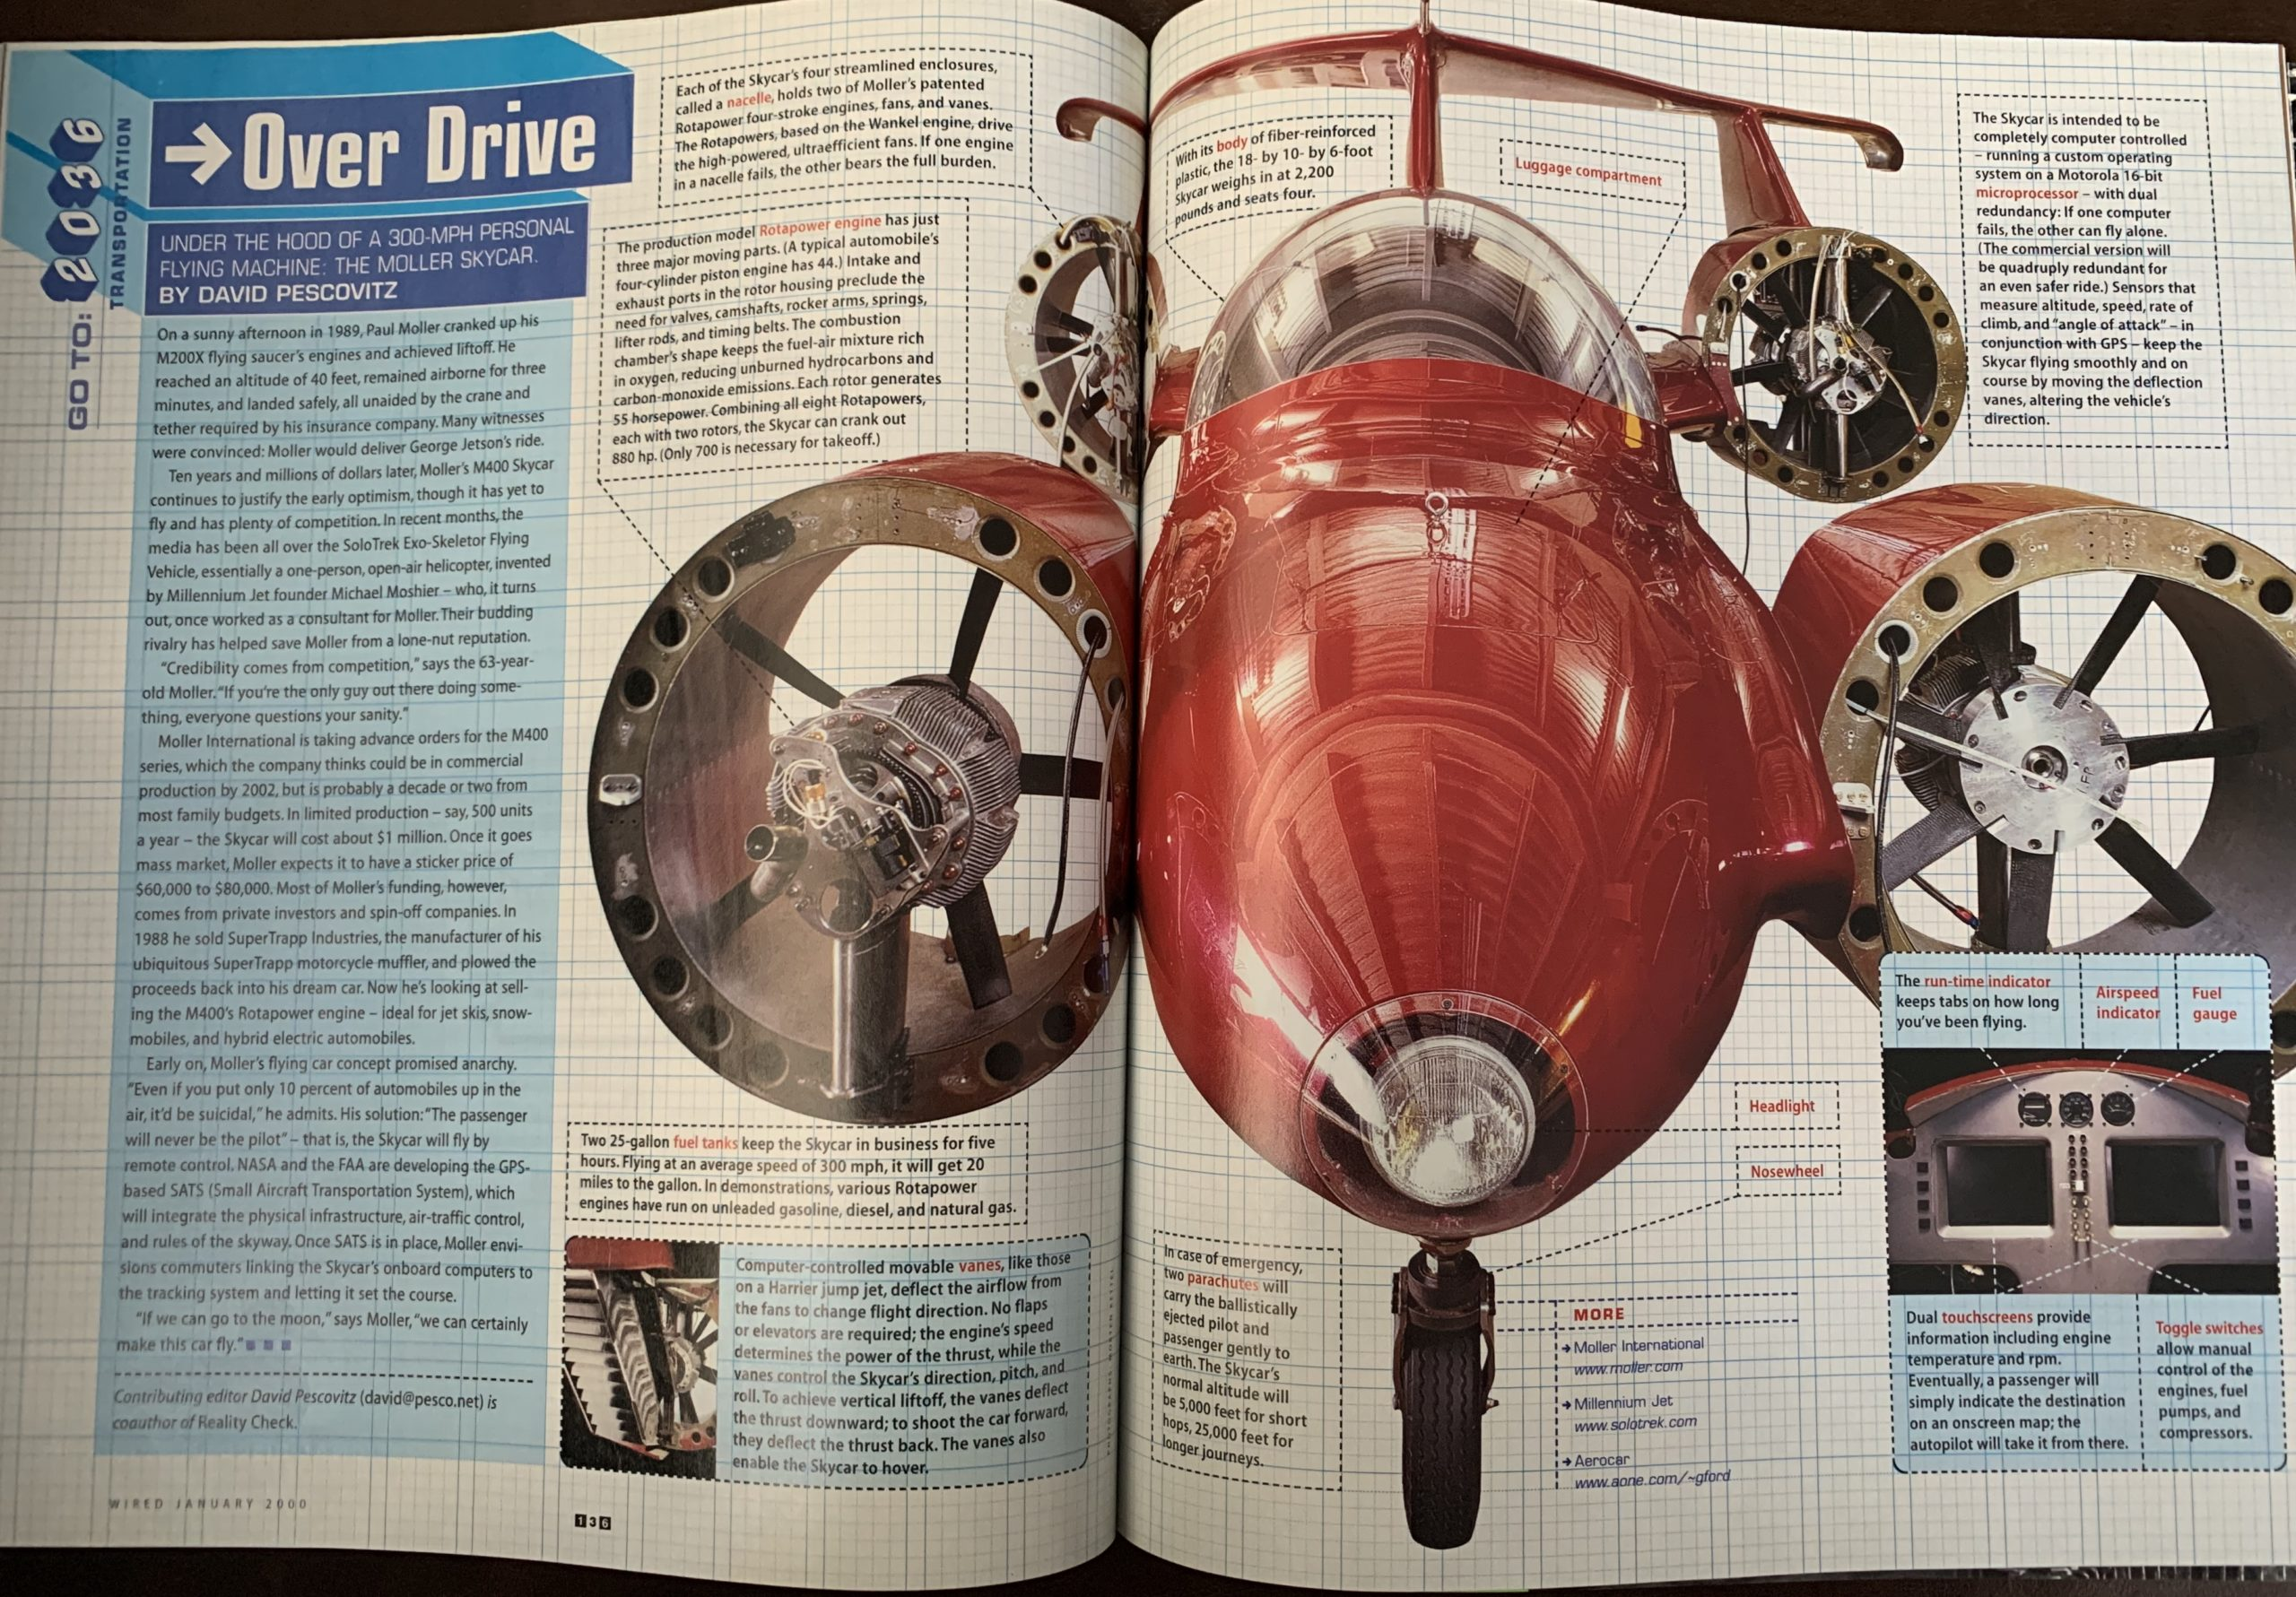 Flying cars article and image